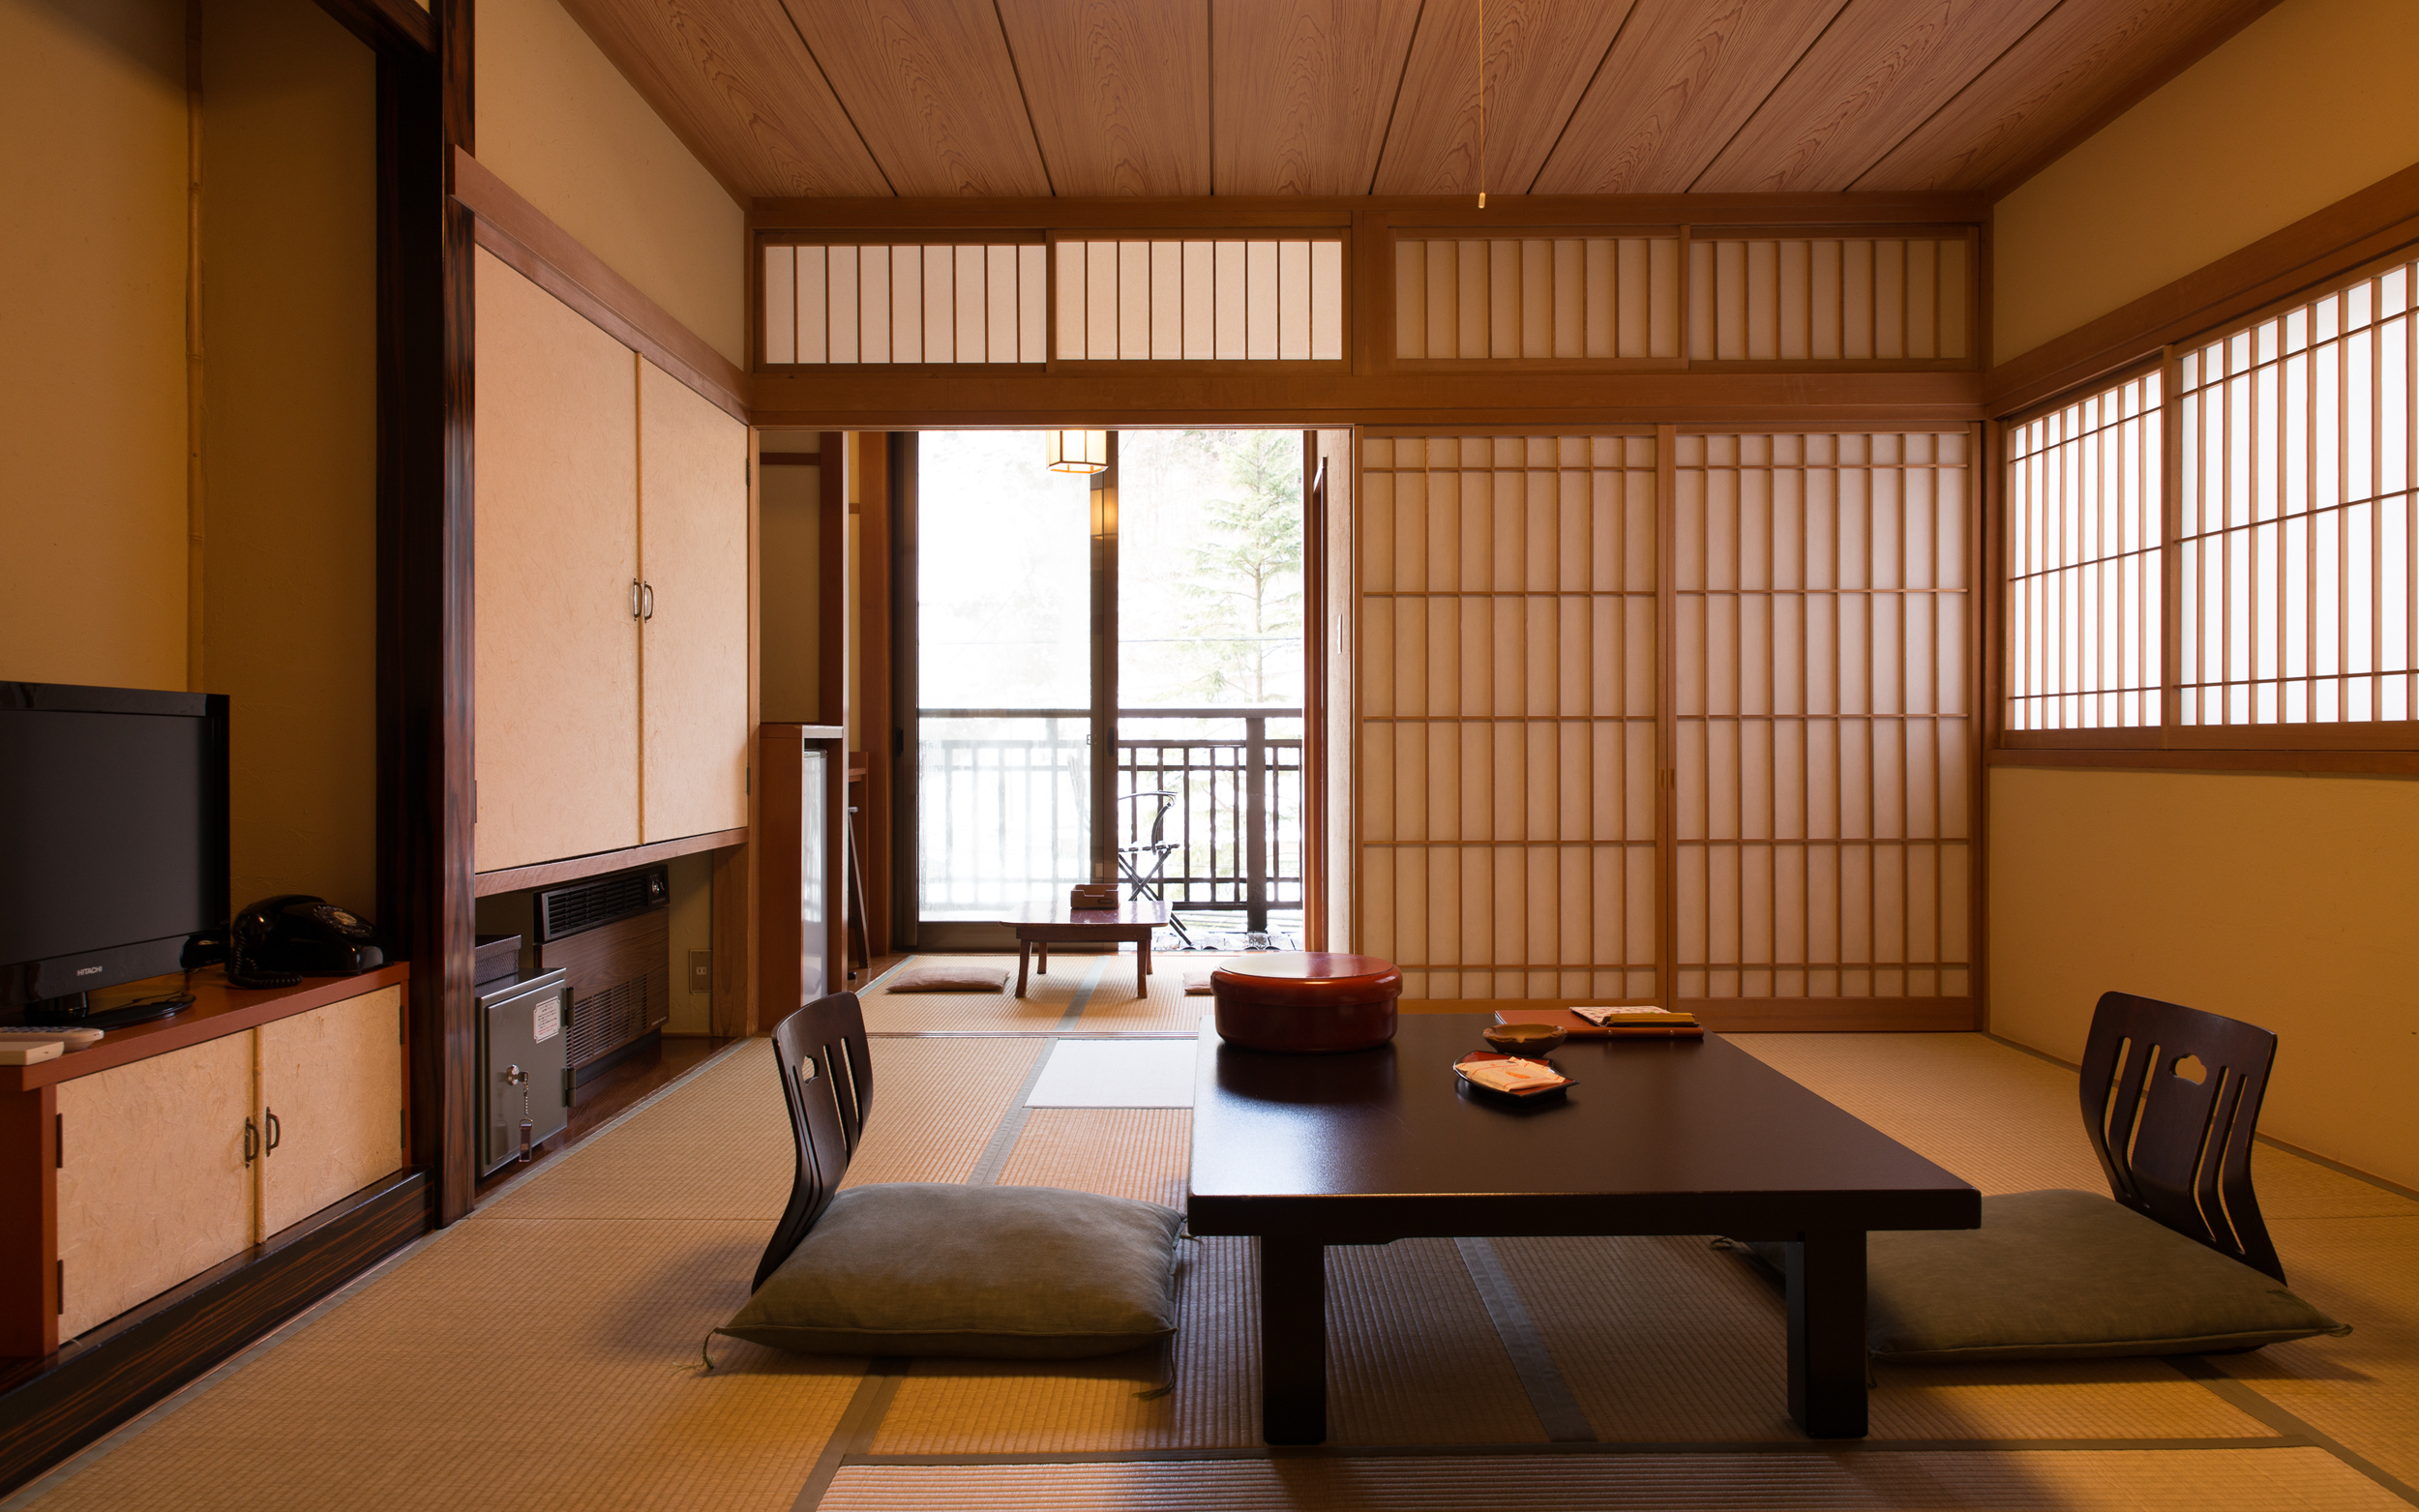 About basic etiquette rules and manners at ryokan - Tatami japones ...